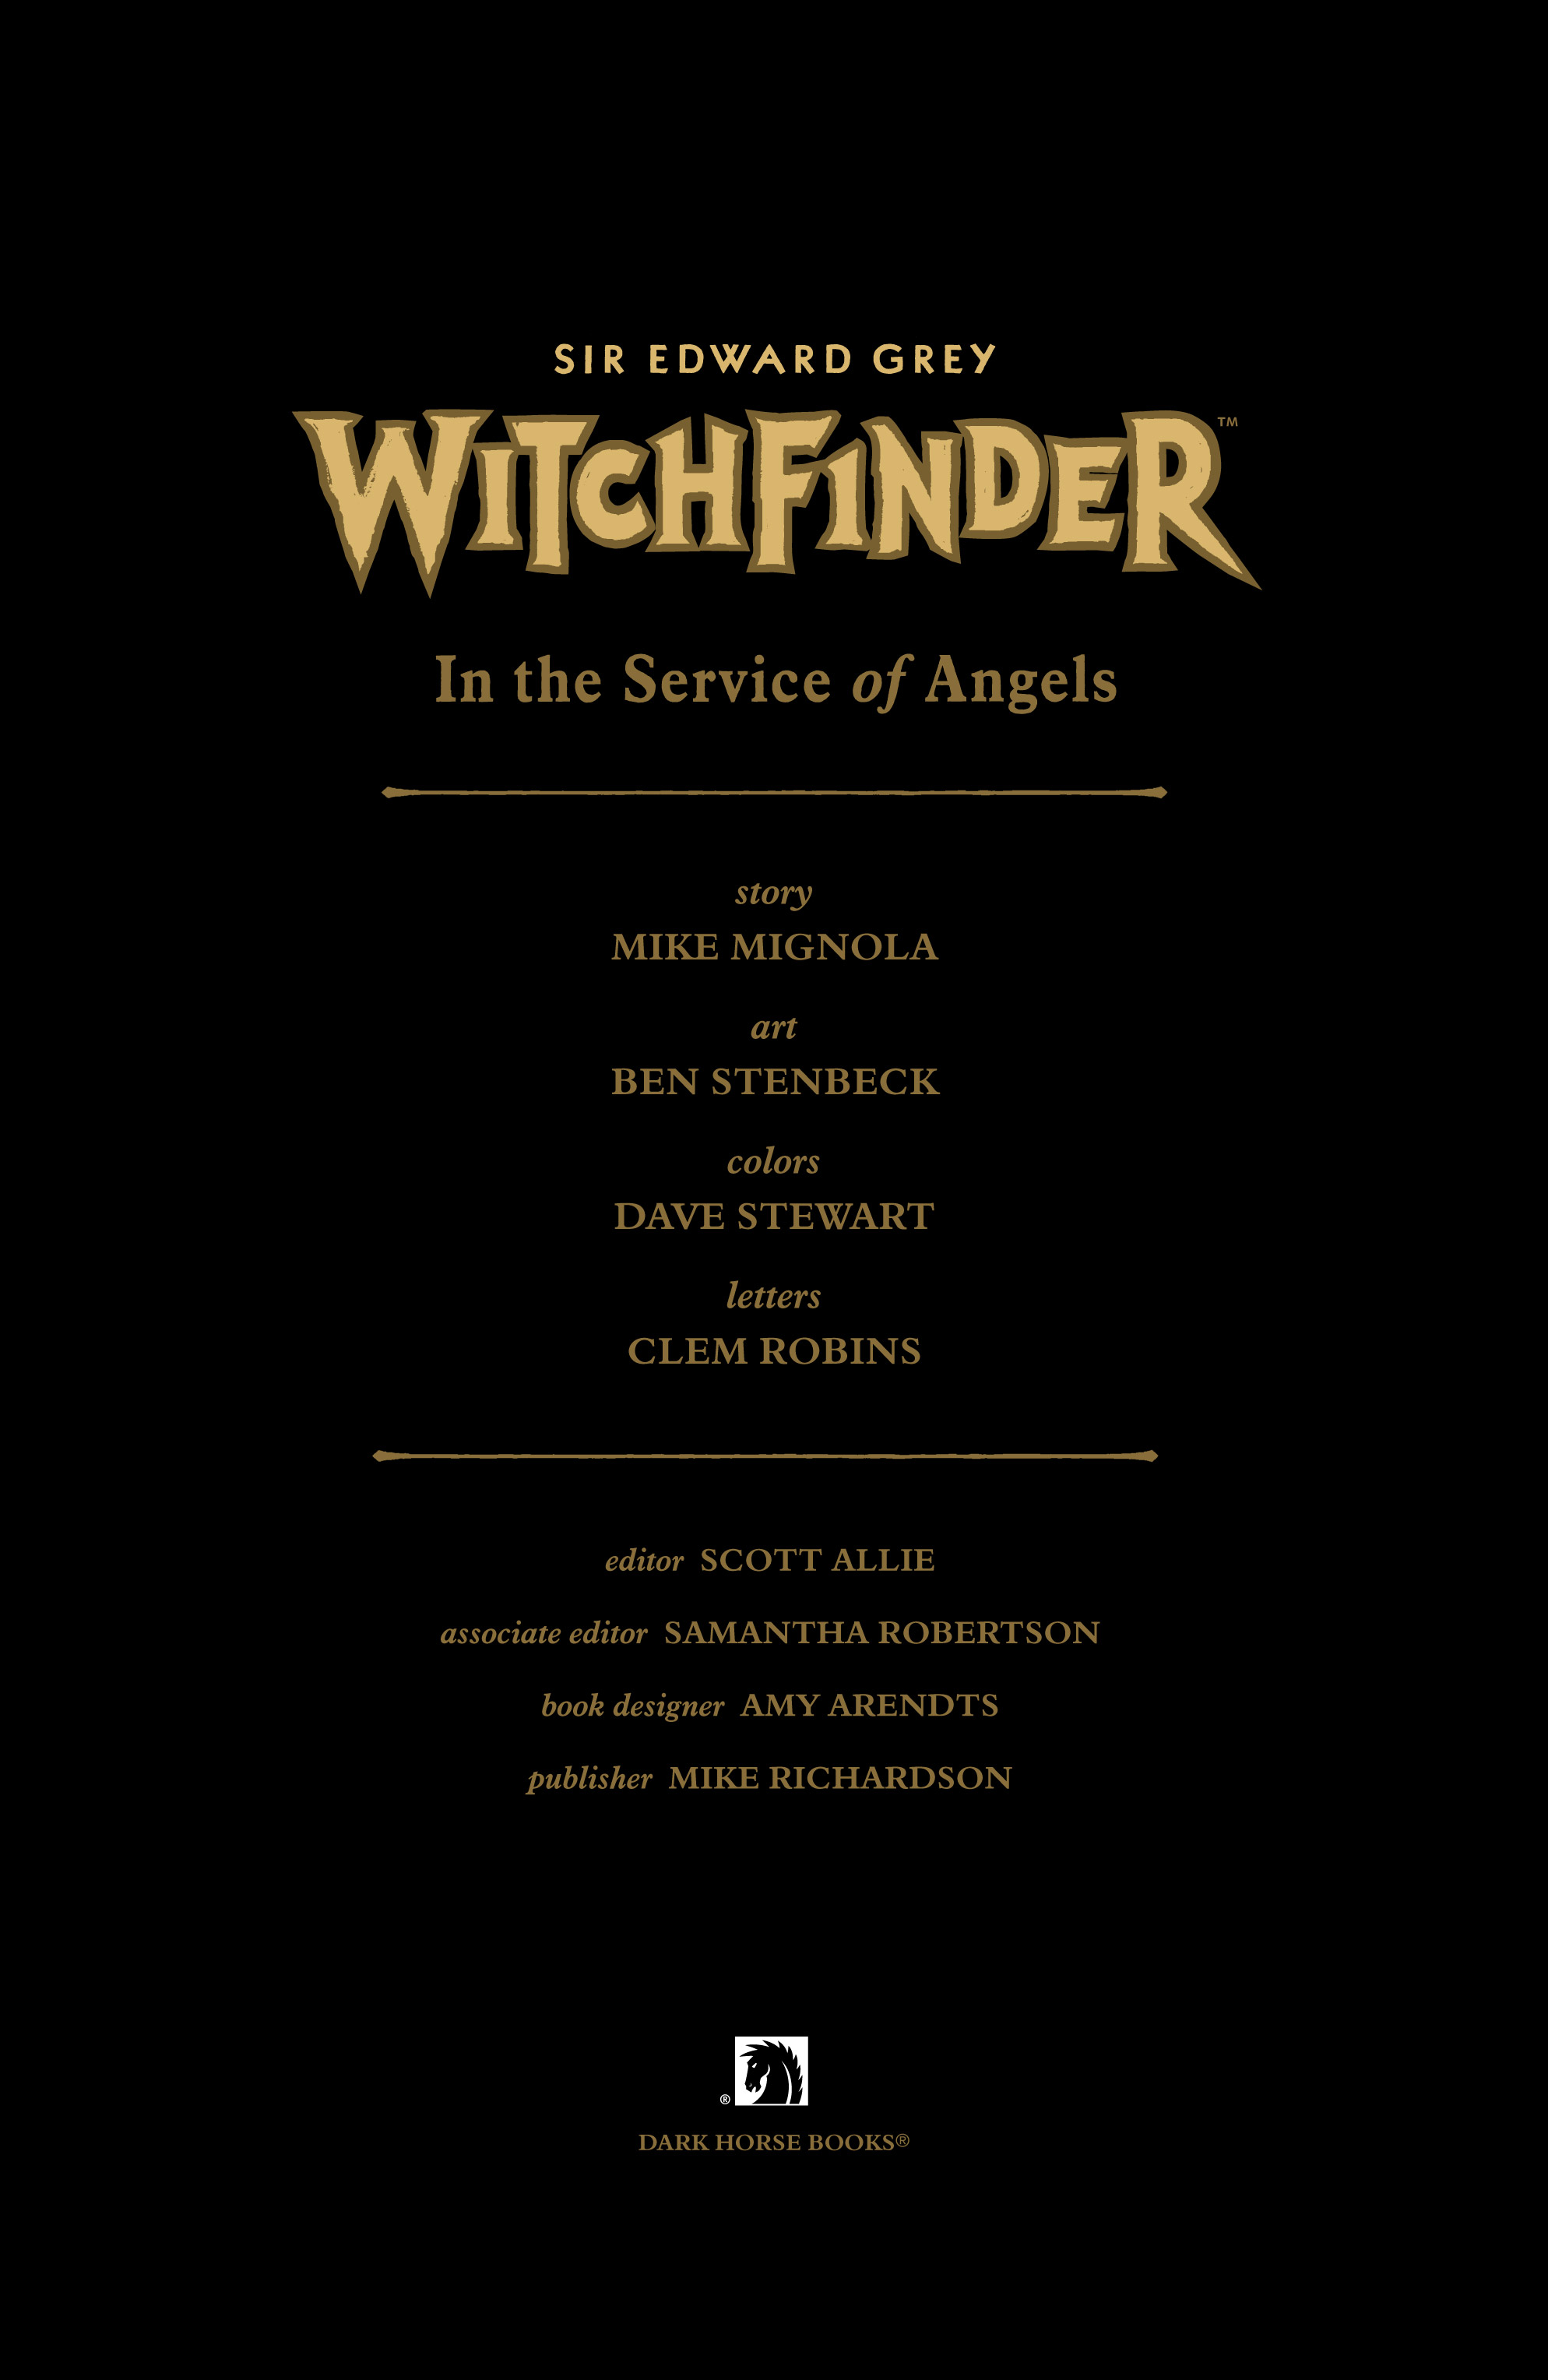 Read online Sir Edward Grey, Witchfinder: In the Service of Angels comic -  Issue # TPB - 4